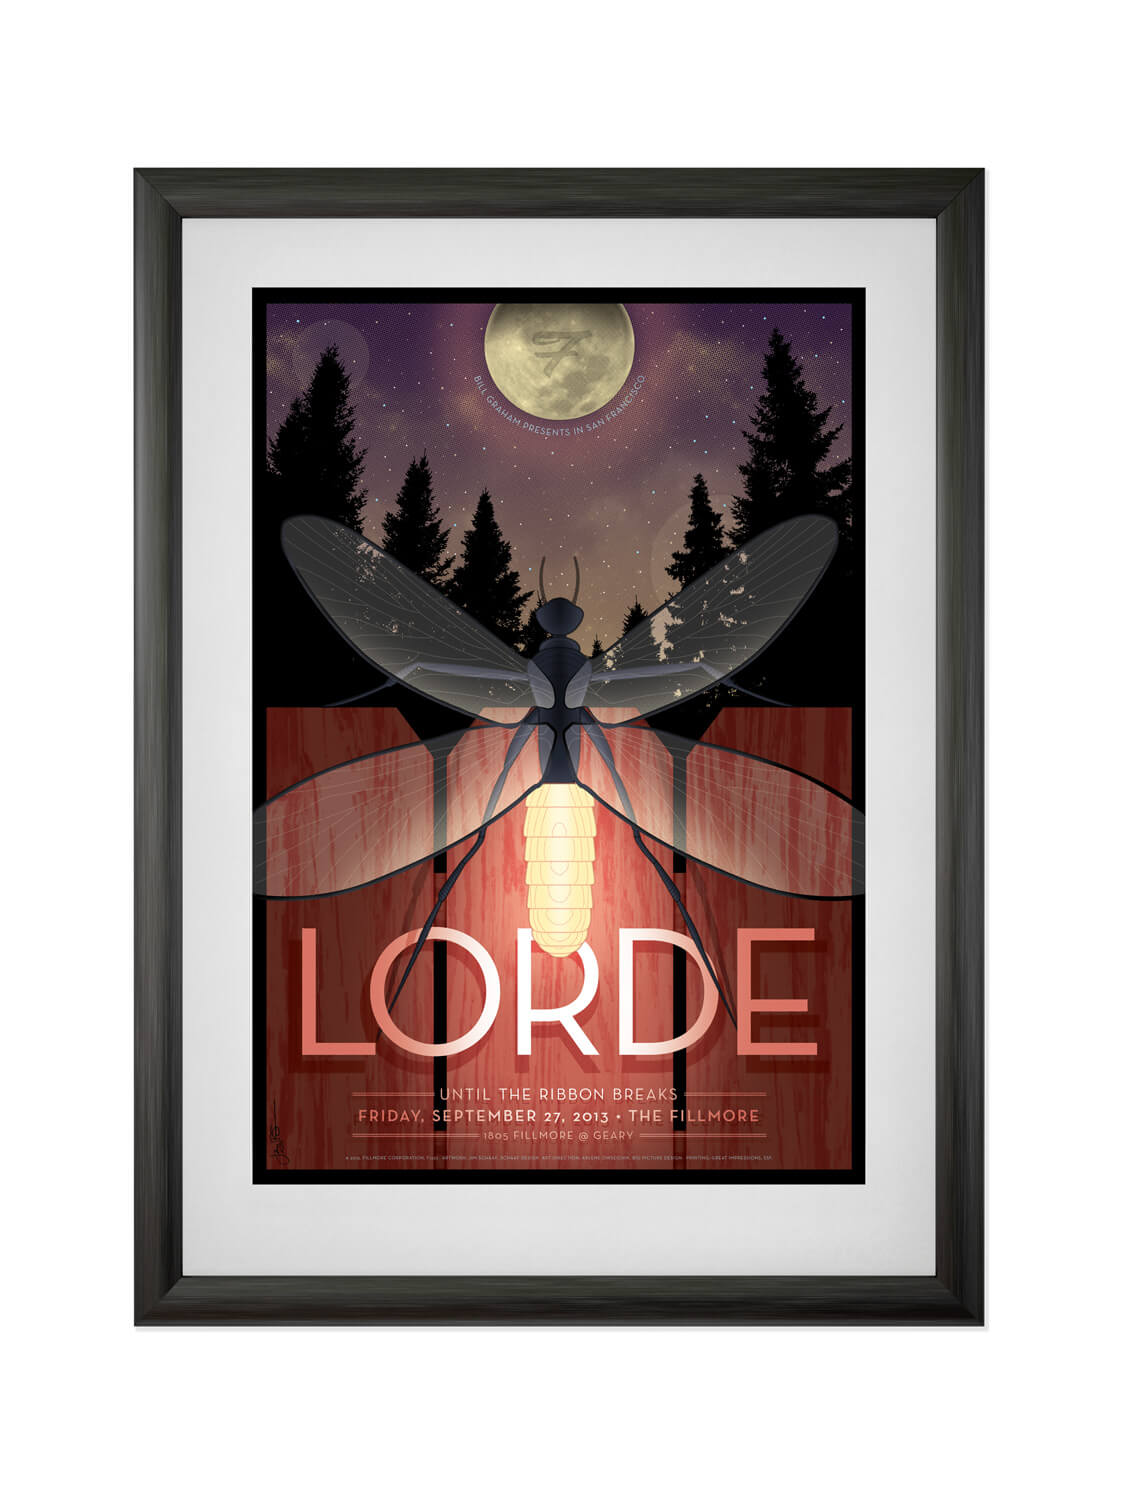 LORDE • FILLMORE SF • 9/27/2013  Poster for teenage phenom Lorde's first-ever Fillmore performance. Buy now.